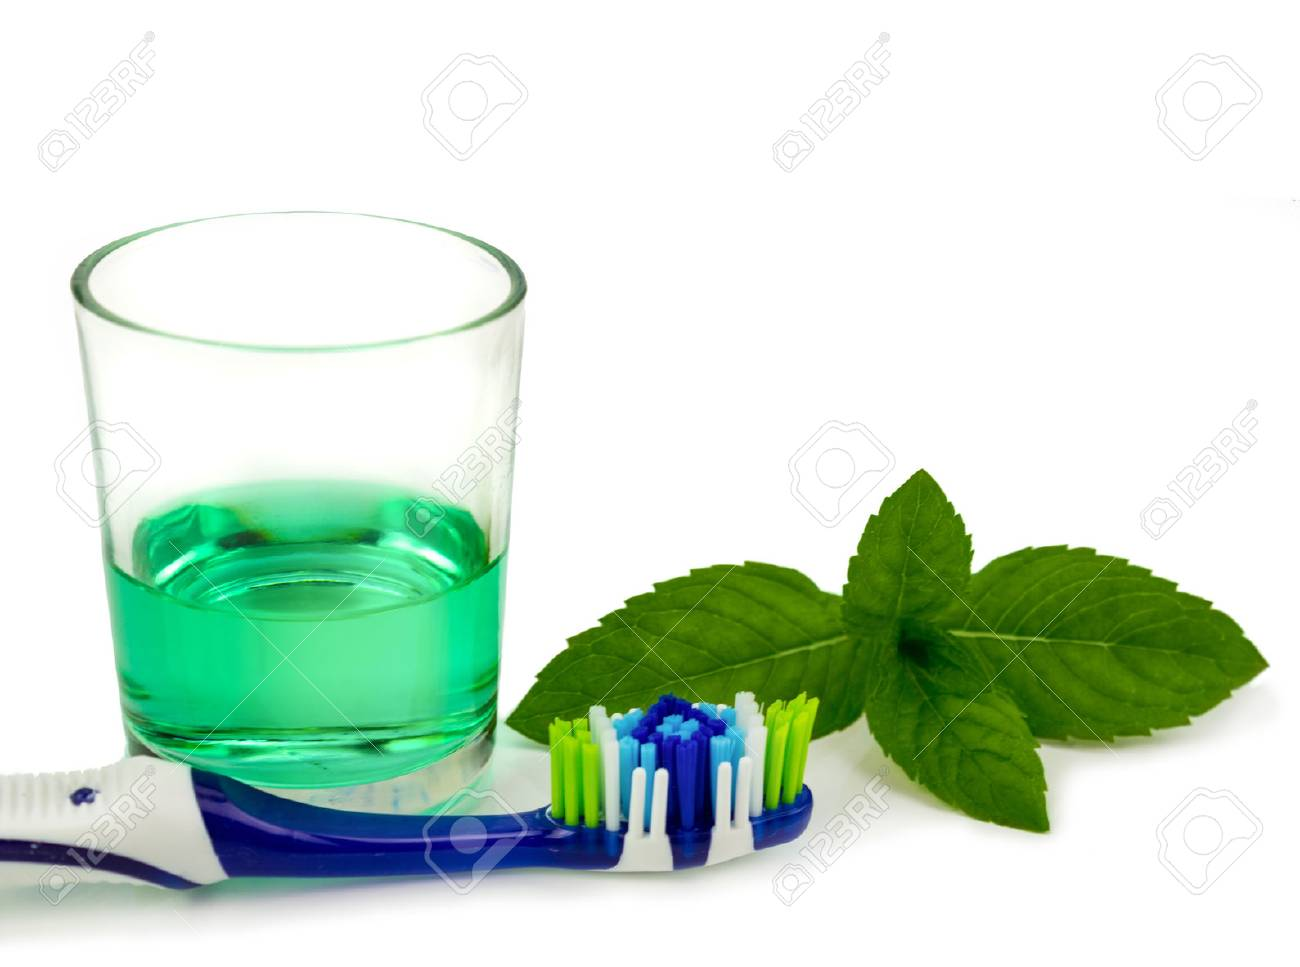 Toothbrush and mouthwash isolated over white - 71338384